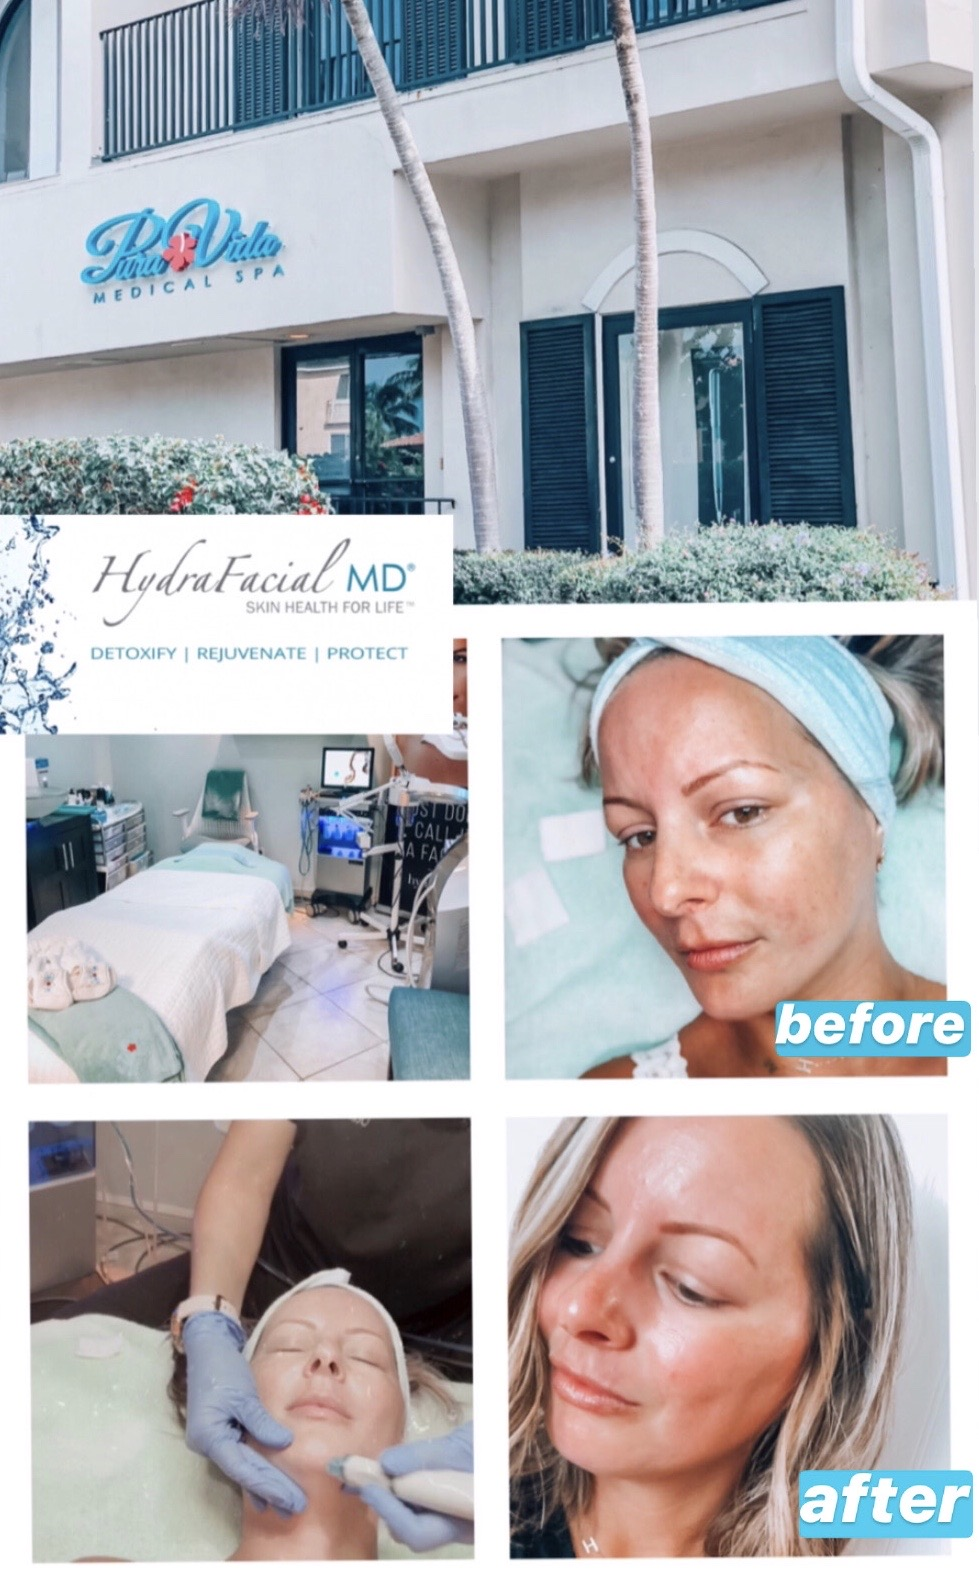 Naples, FL Medical Spa Review - Hydrafacial